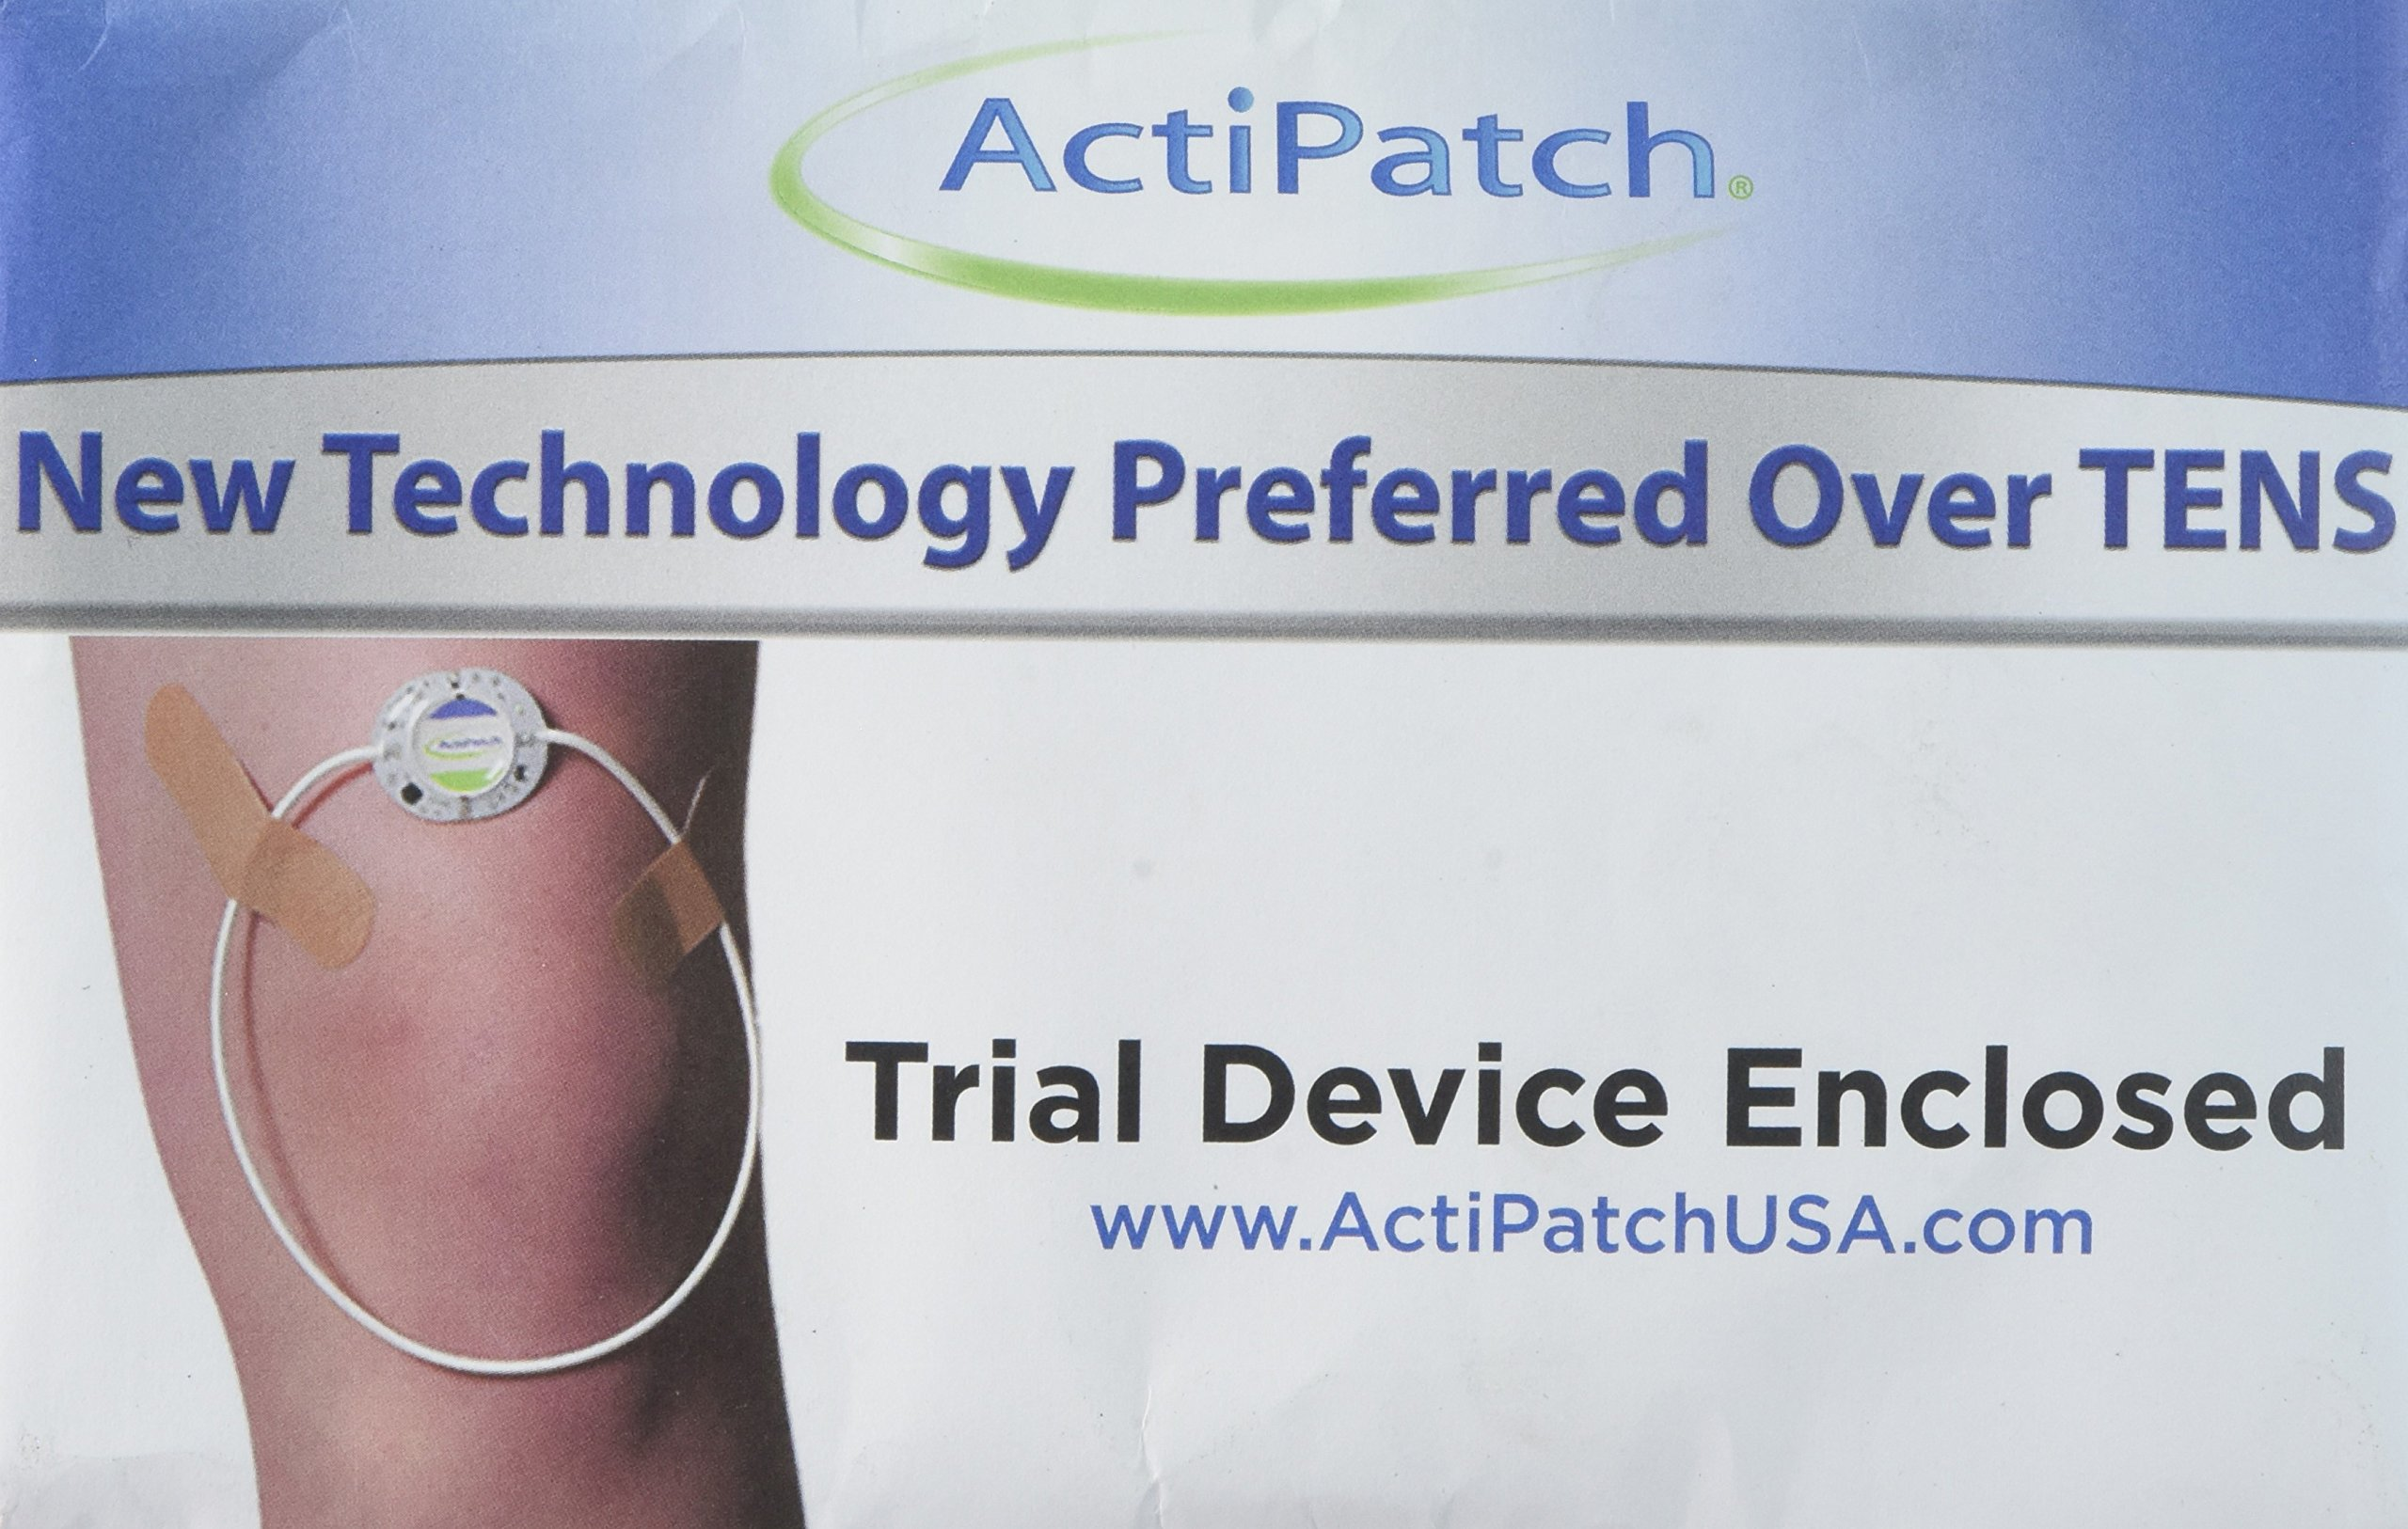 ActiPatch Advanced 24-Hour Pain Relief - 7-Day Continuous Therapy Trial Product